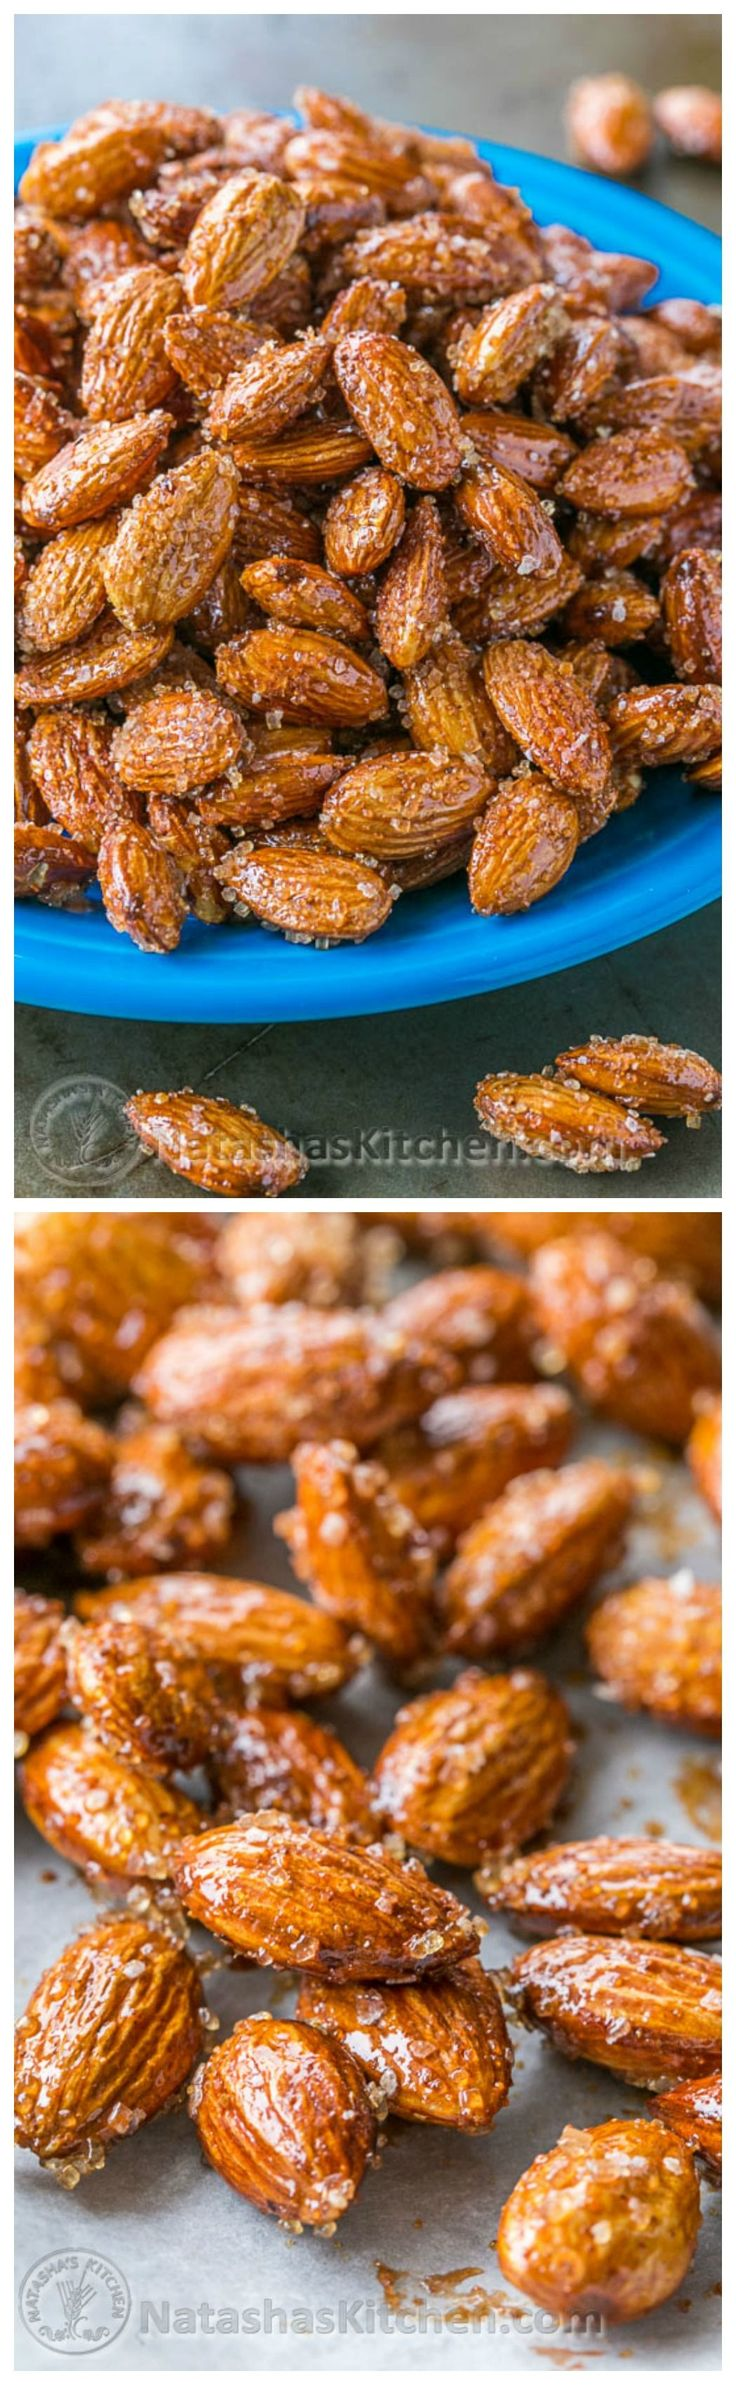 These Honey Roasted Almonds are so easy and a staple treat in our house! Highly recommended!!! @natashaskitchen